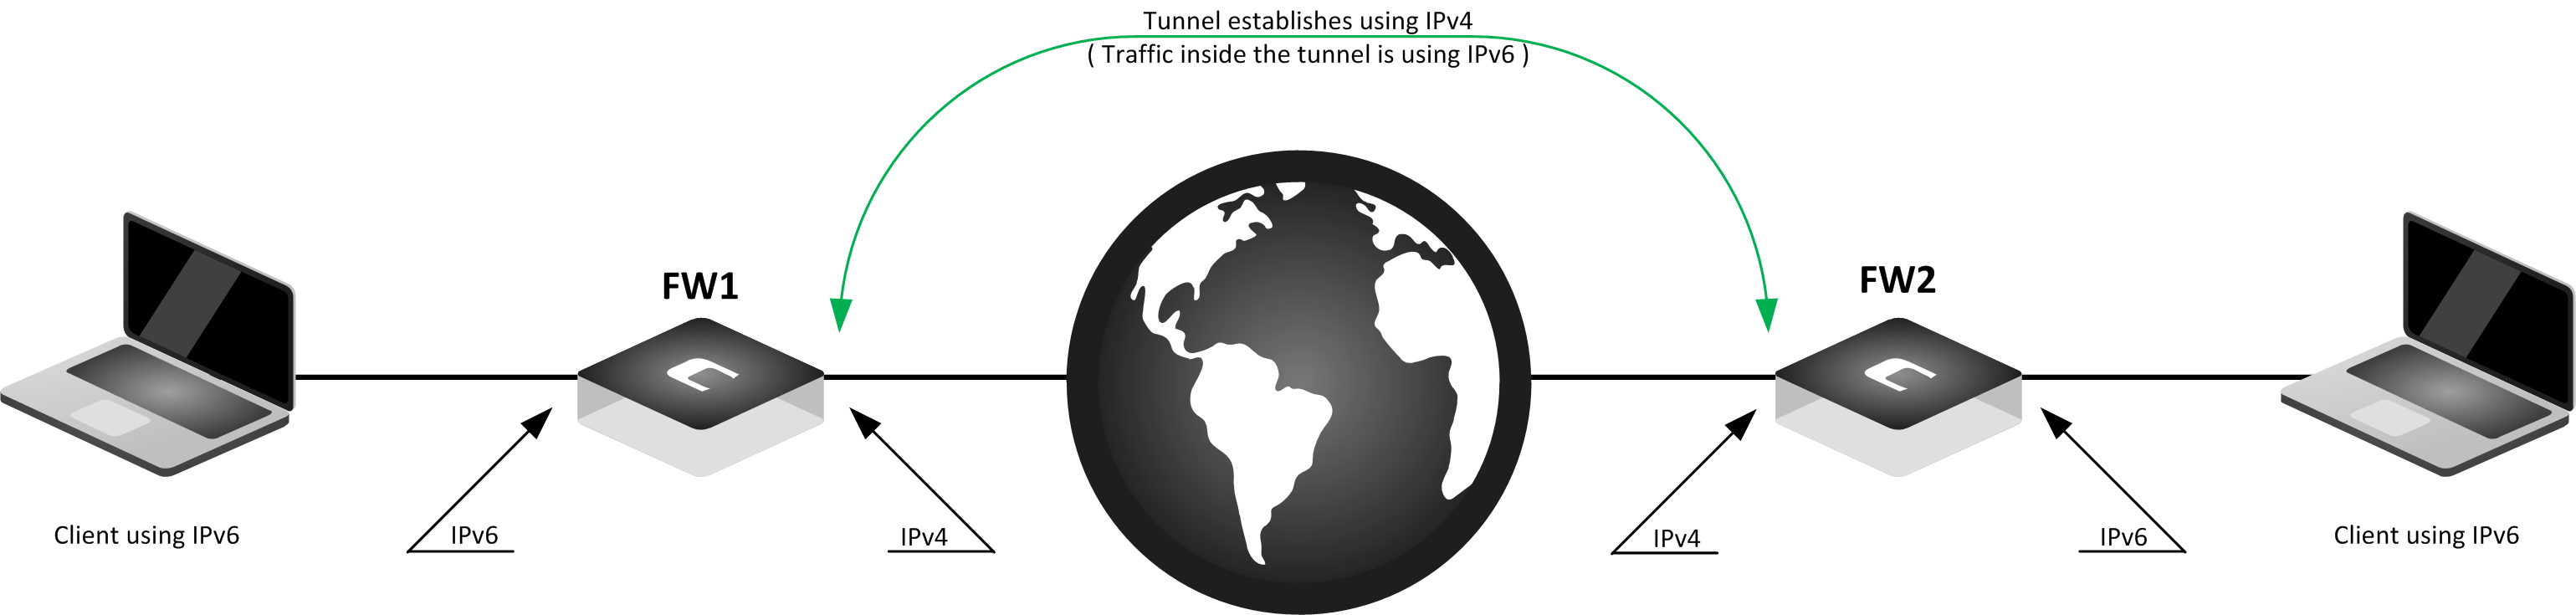 Tunneling_IPv6_over_IPv4.png